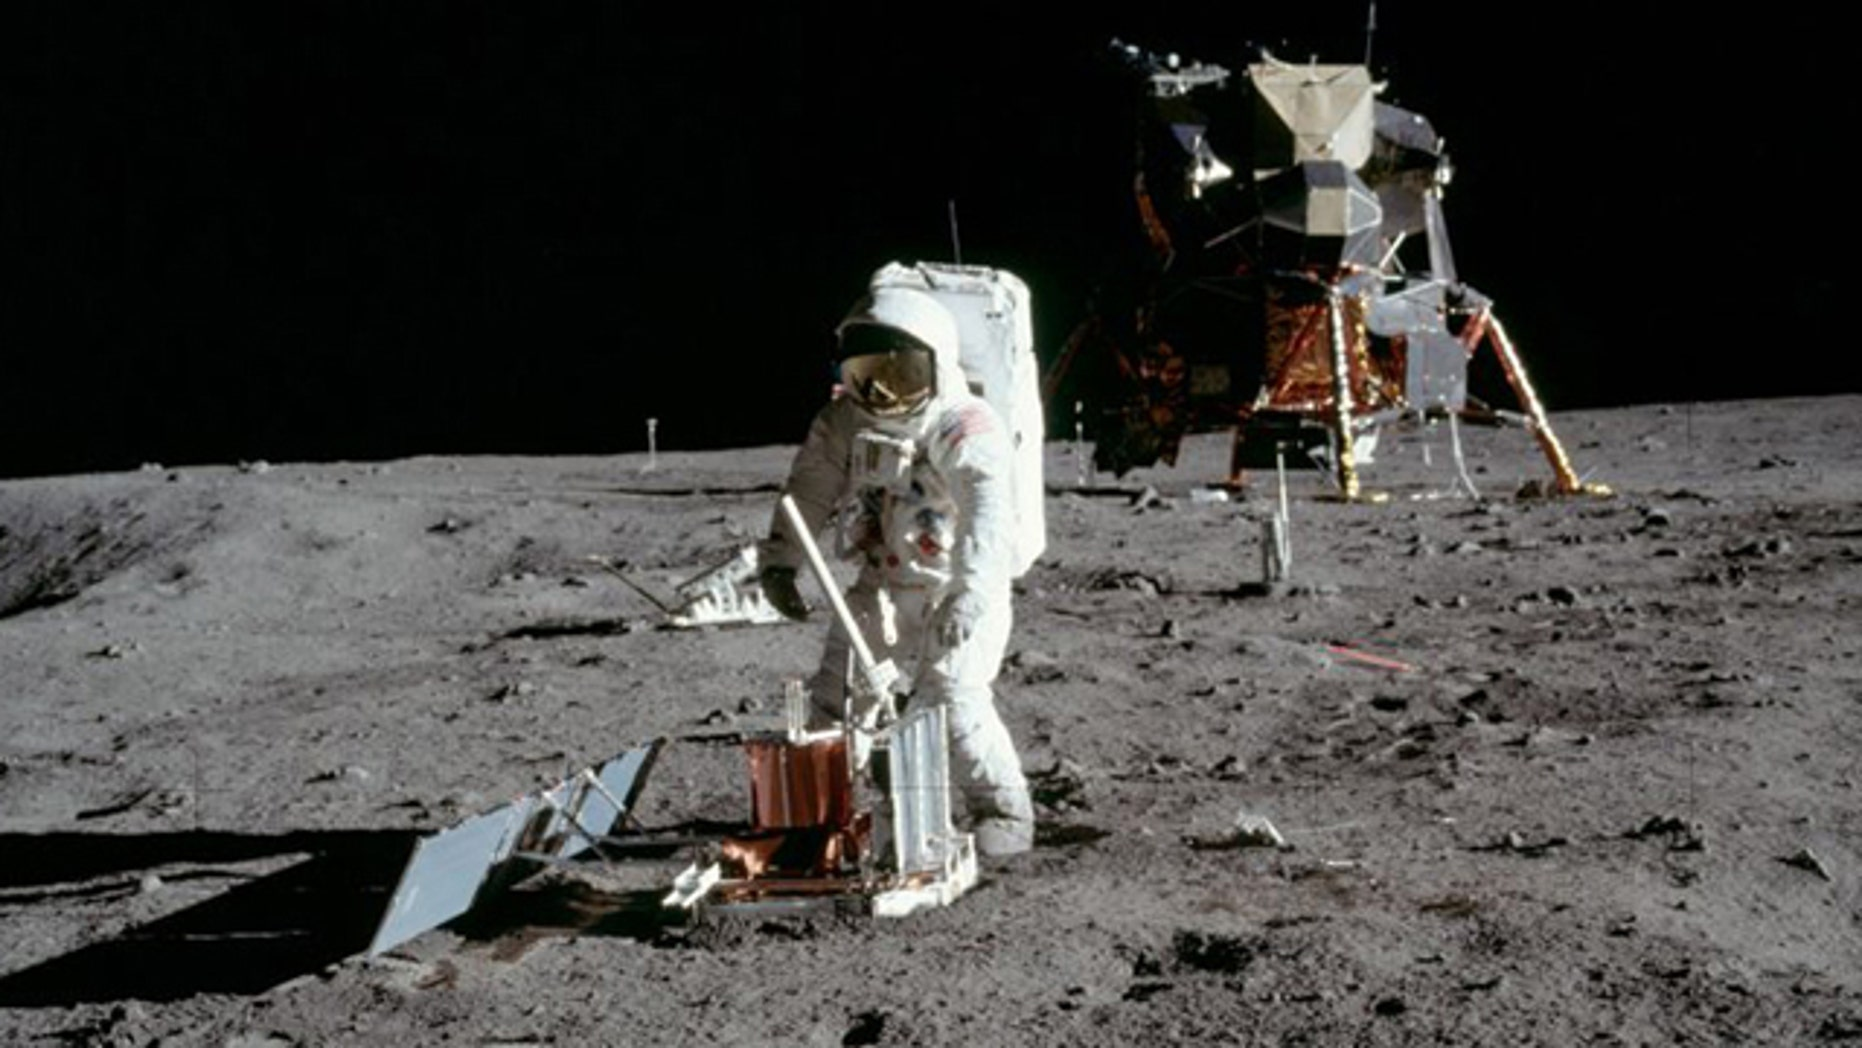 Buzz Aldrin deploys a seismometer in the Sea of Tranquillity area of the moon.